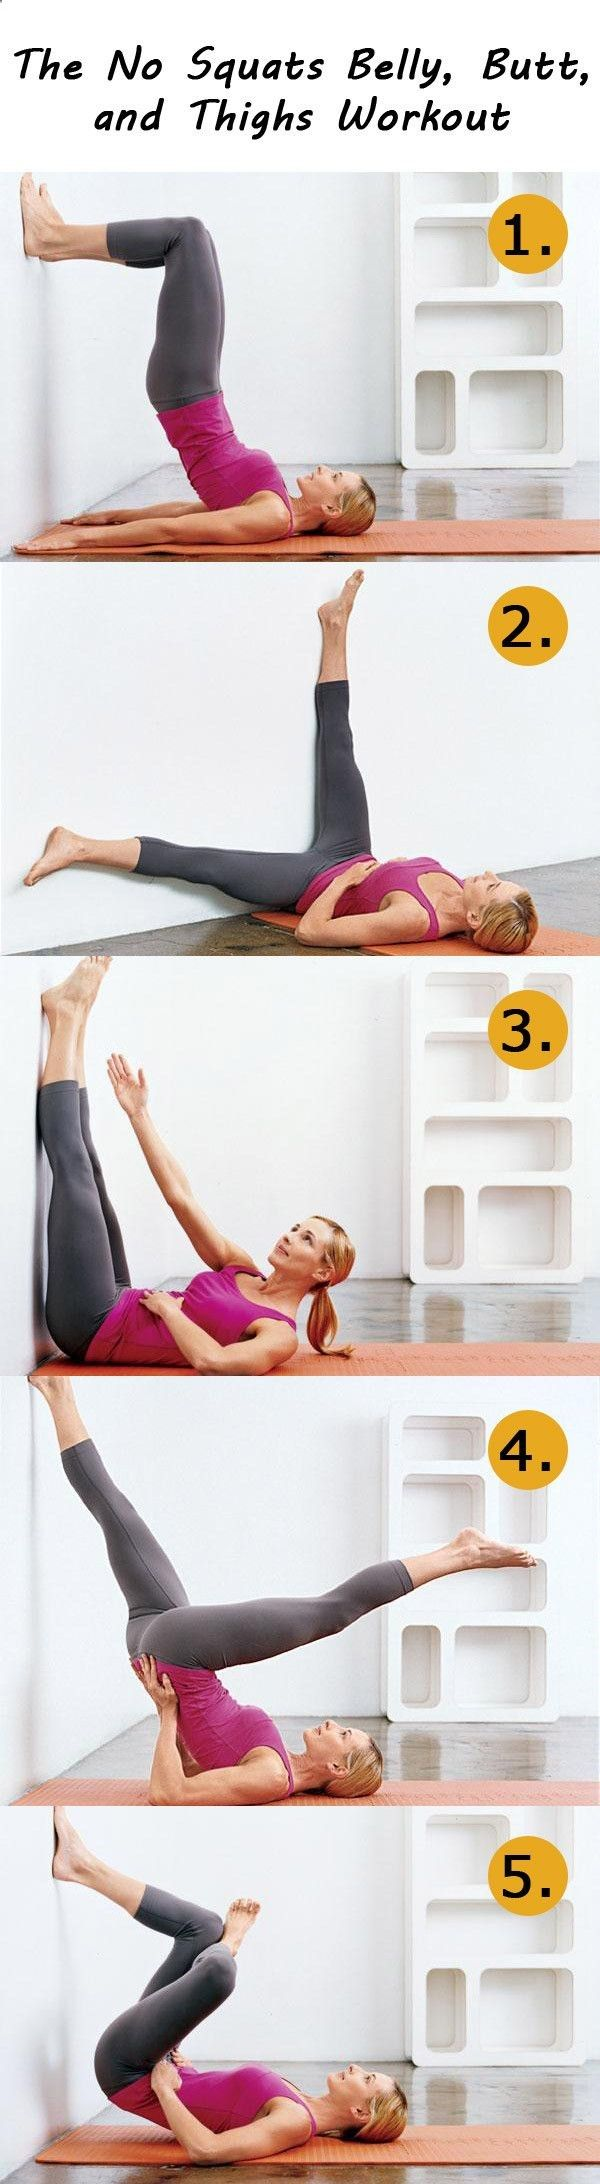 flatten your belly, slim your thighs, and firm your butt in 2 weeks!